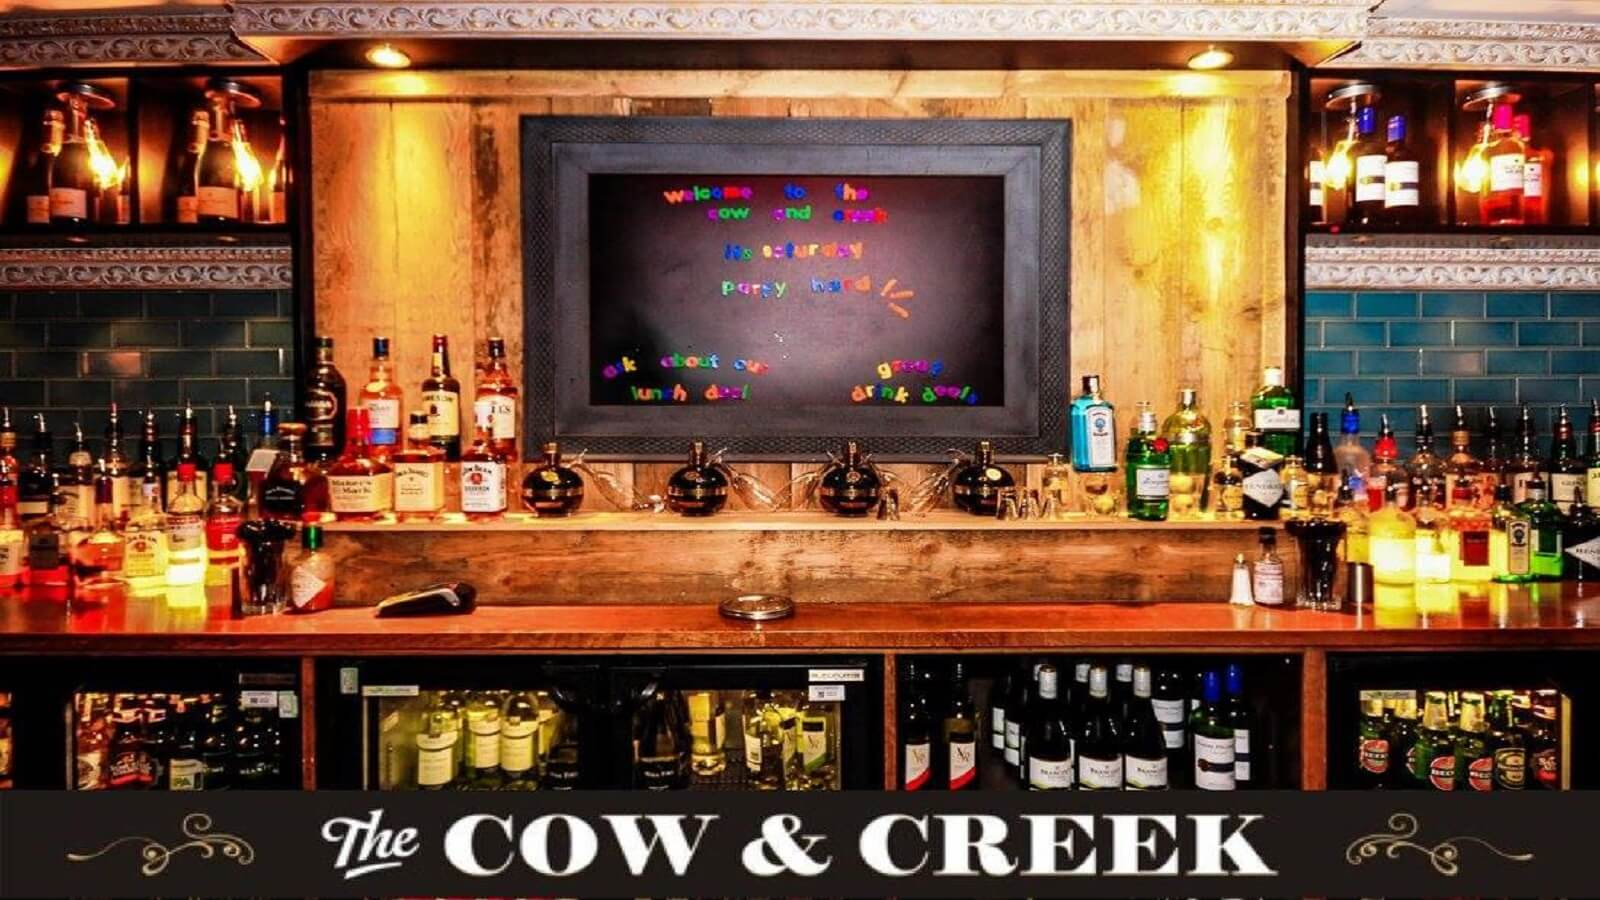 Cow and Creek